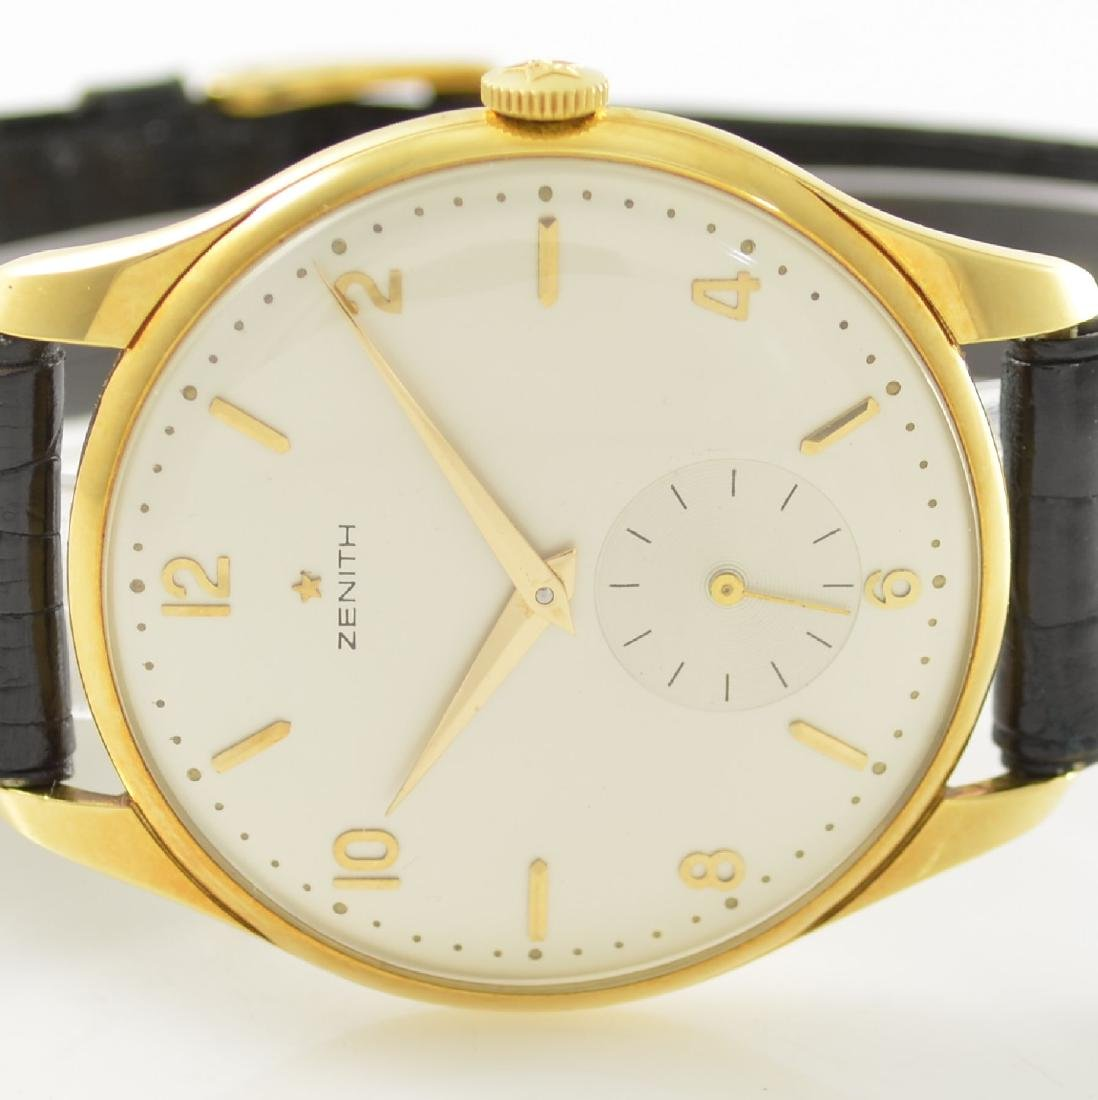 ZENITH oversized 18k yellow gold gents wristwatch - 2